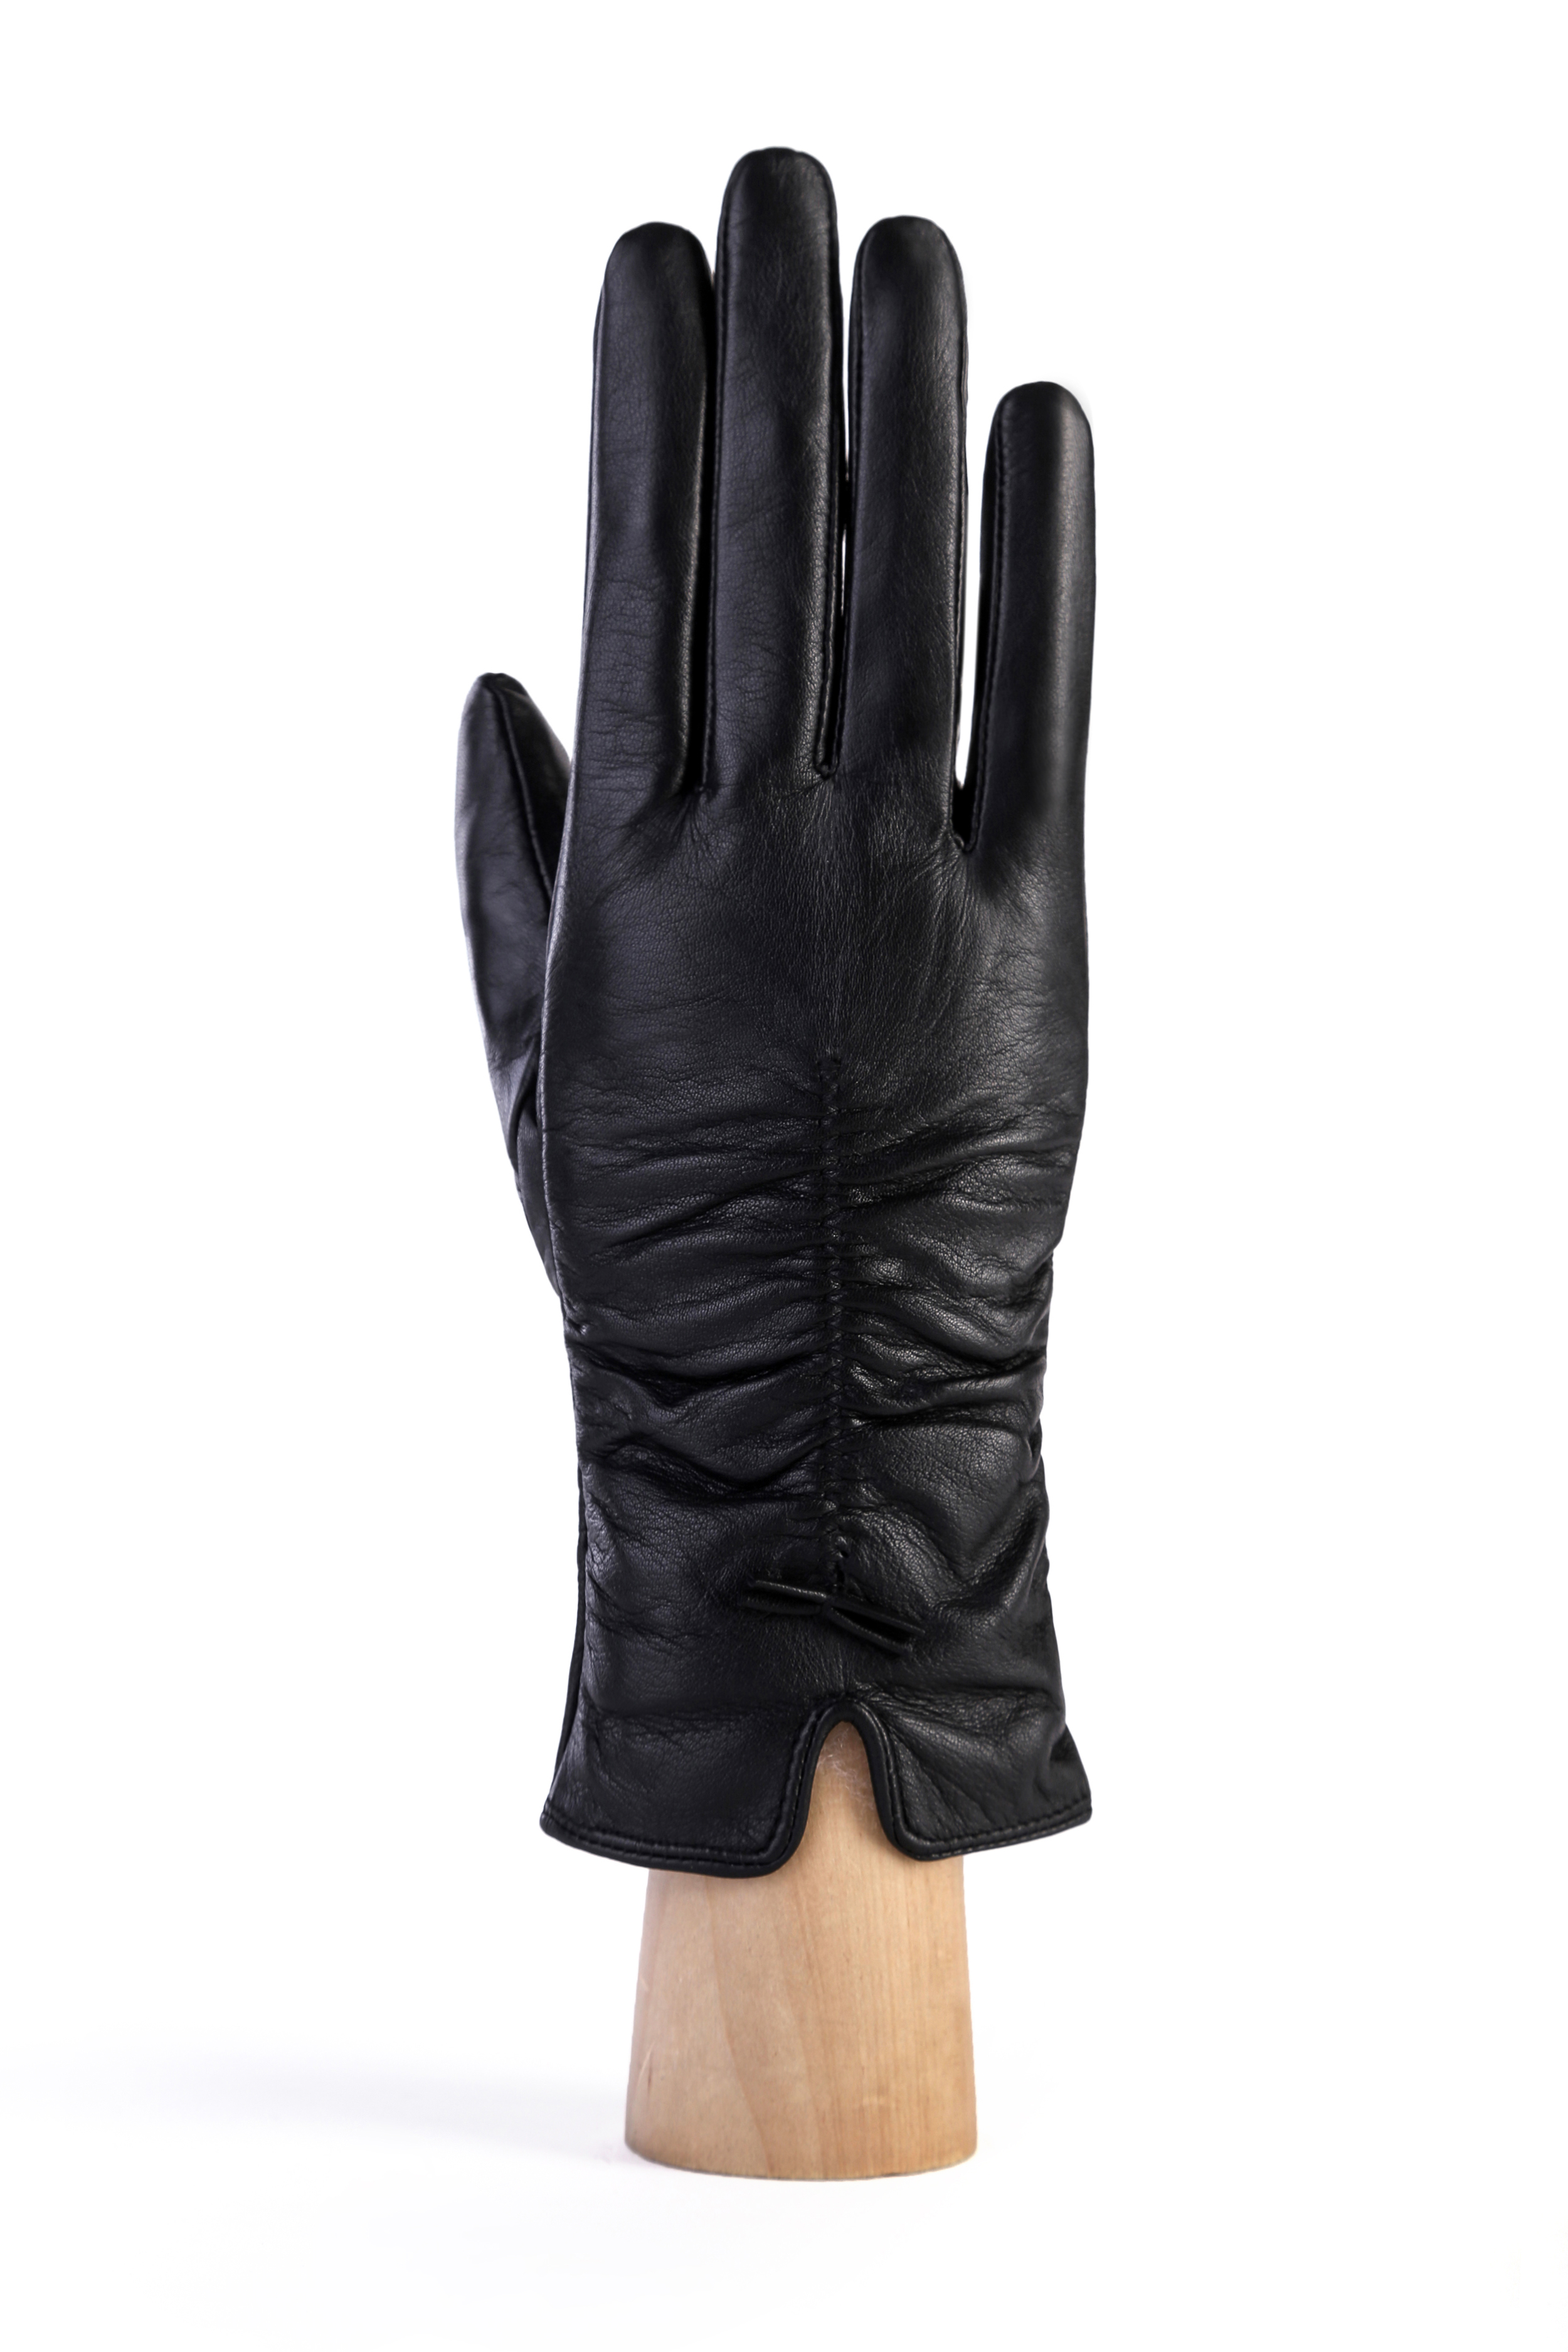 MoDA Ms Florence Premium Genuine Leather Gloves C0128 Black